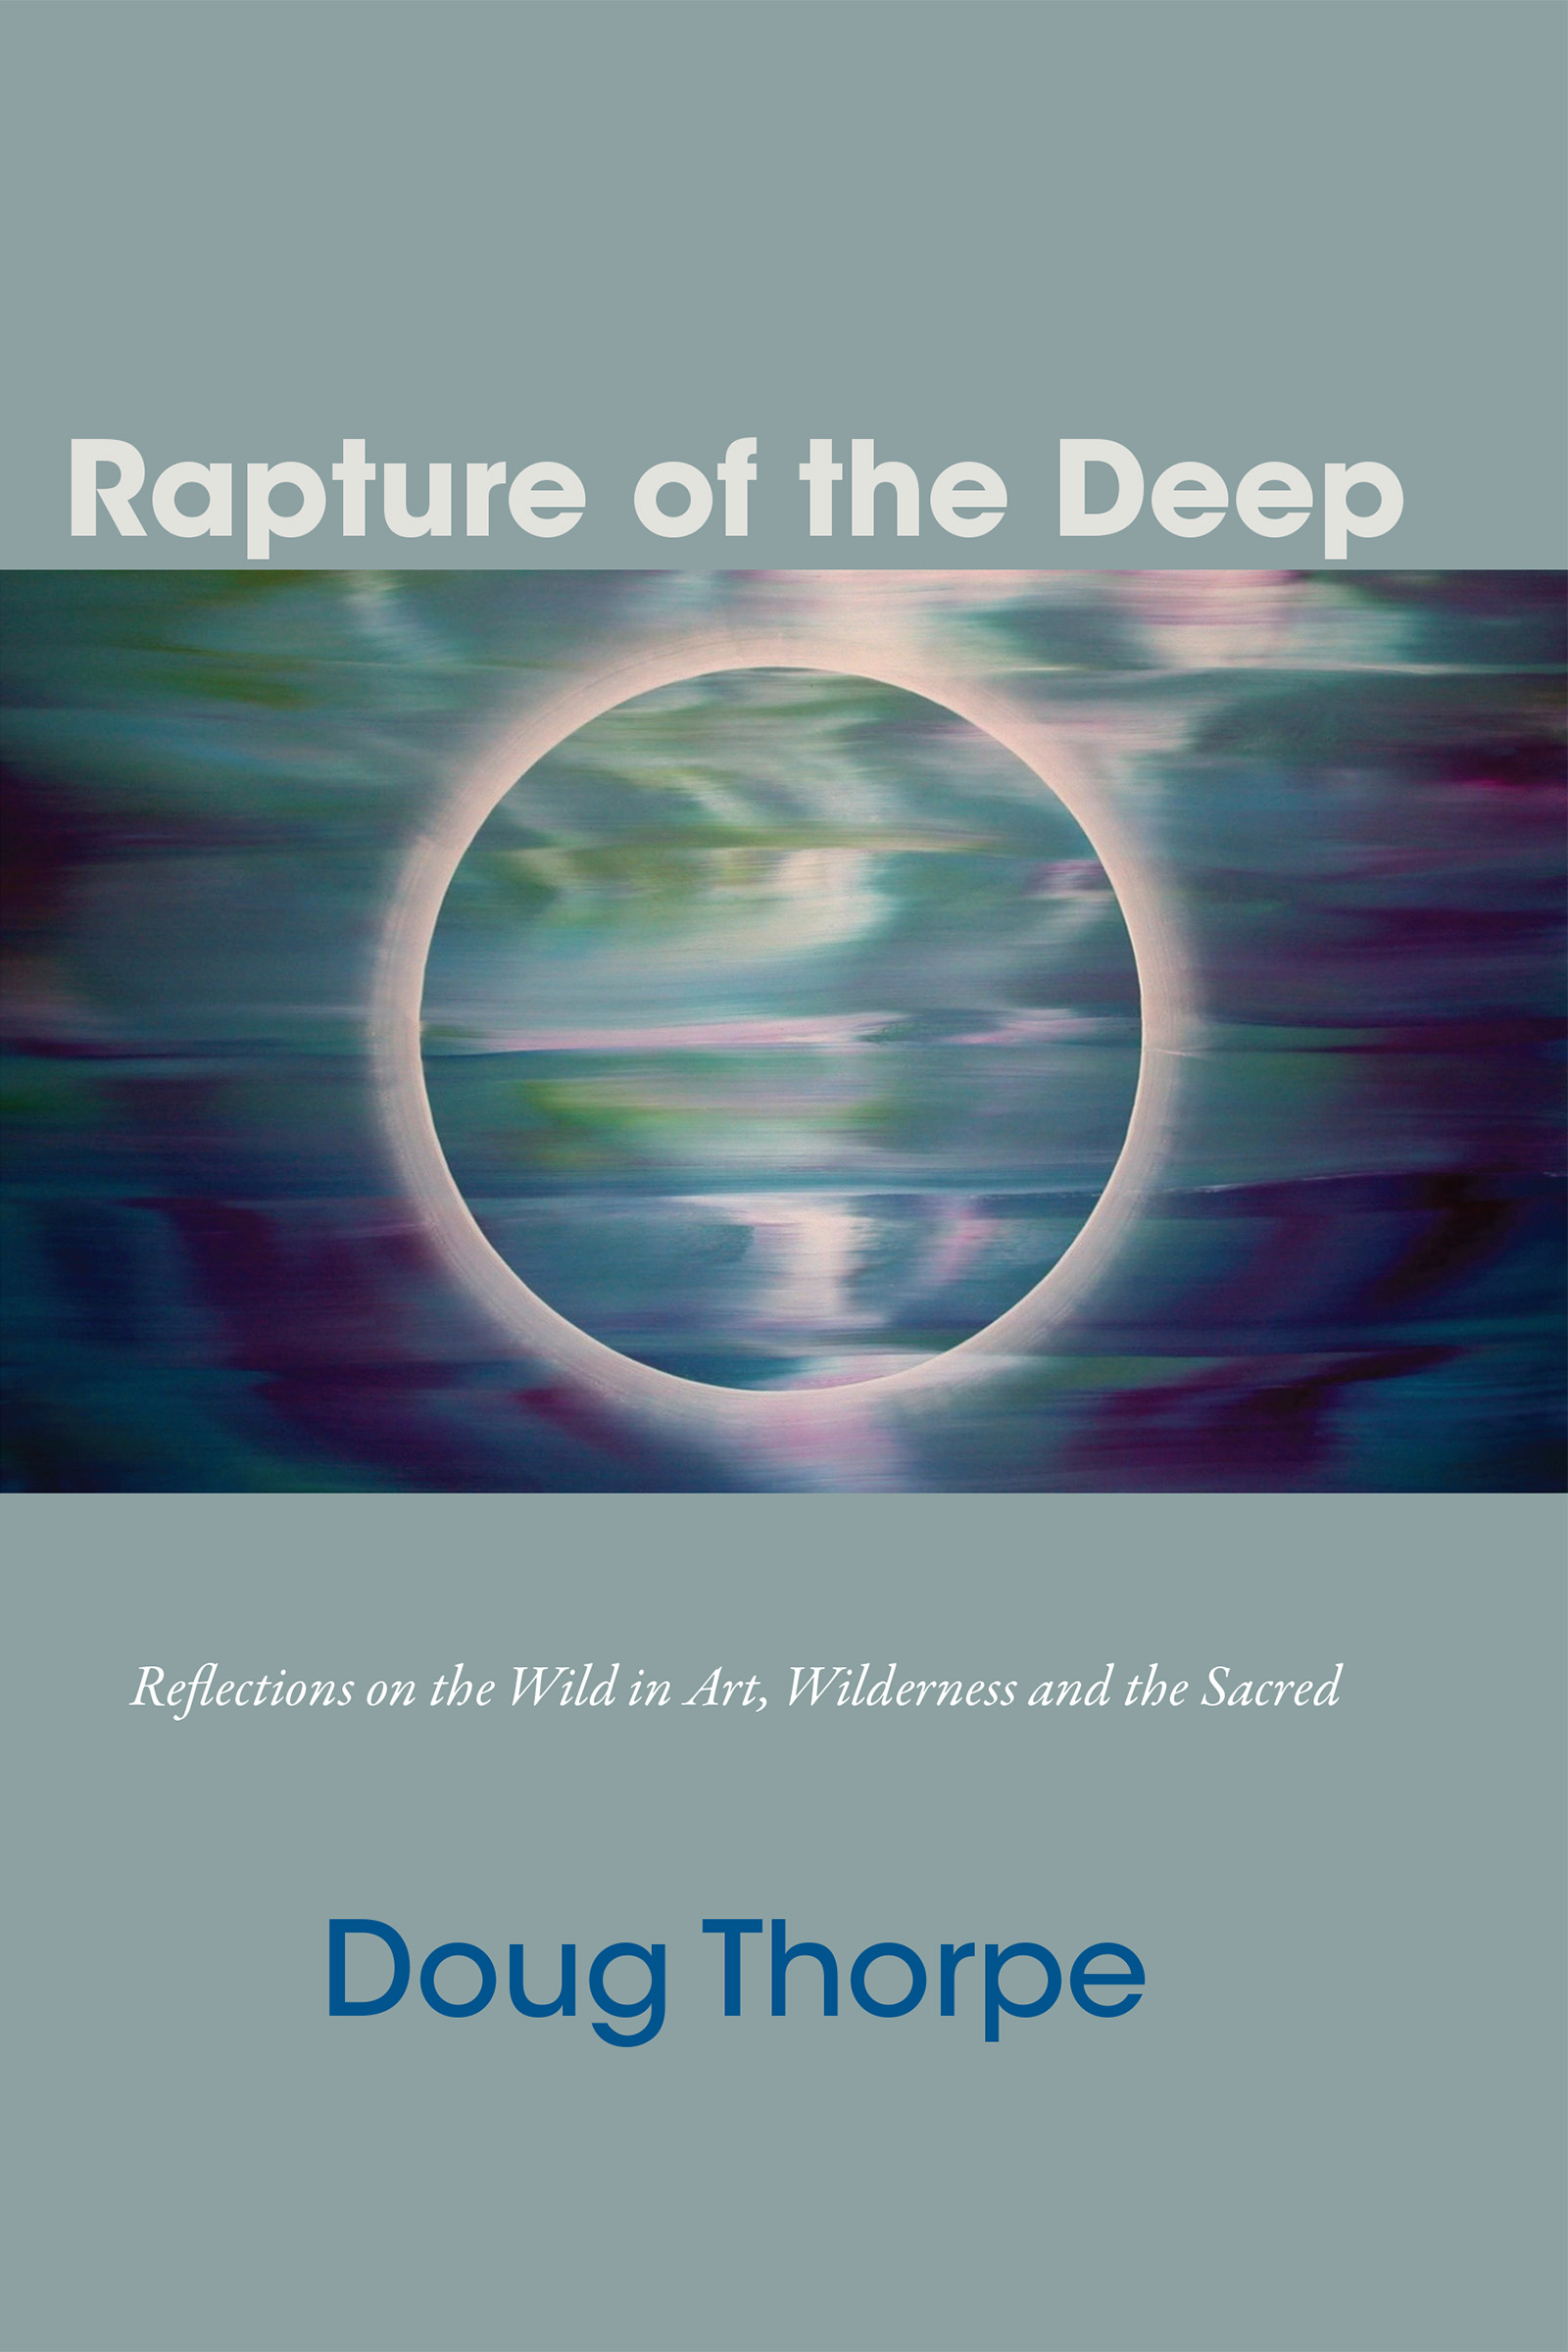 White and blue text stating Rapture of the Deep Reflections on the Wild in Art, Wilderness and the Sacred by Doug Thorpe over a blue grey background with the central image of a colorful eclipse.